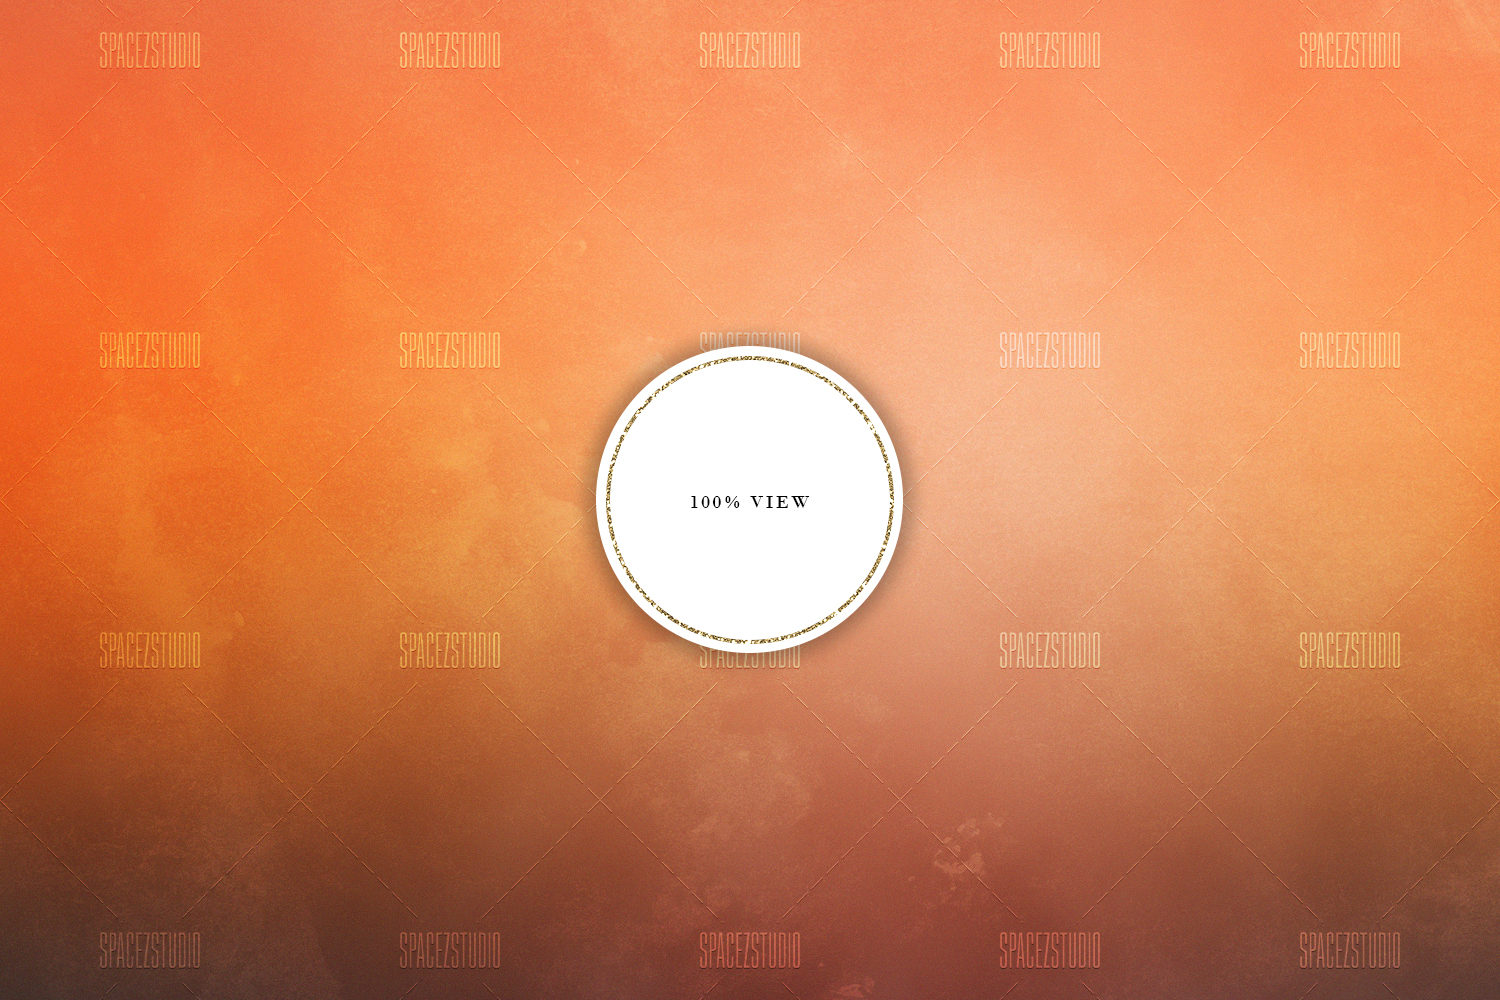 Blur Sunset Grungy Backgrounds example image 6